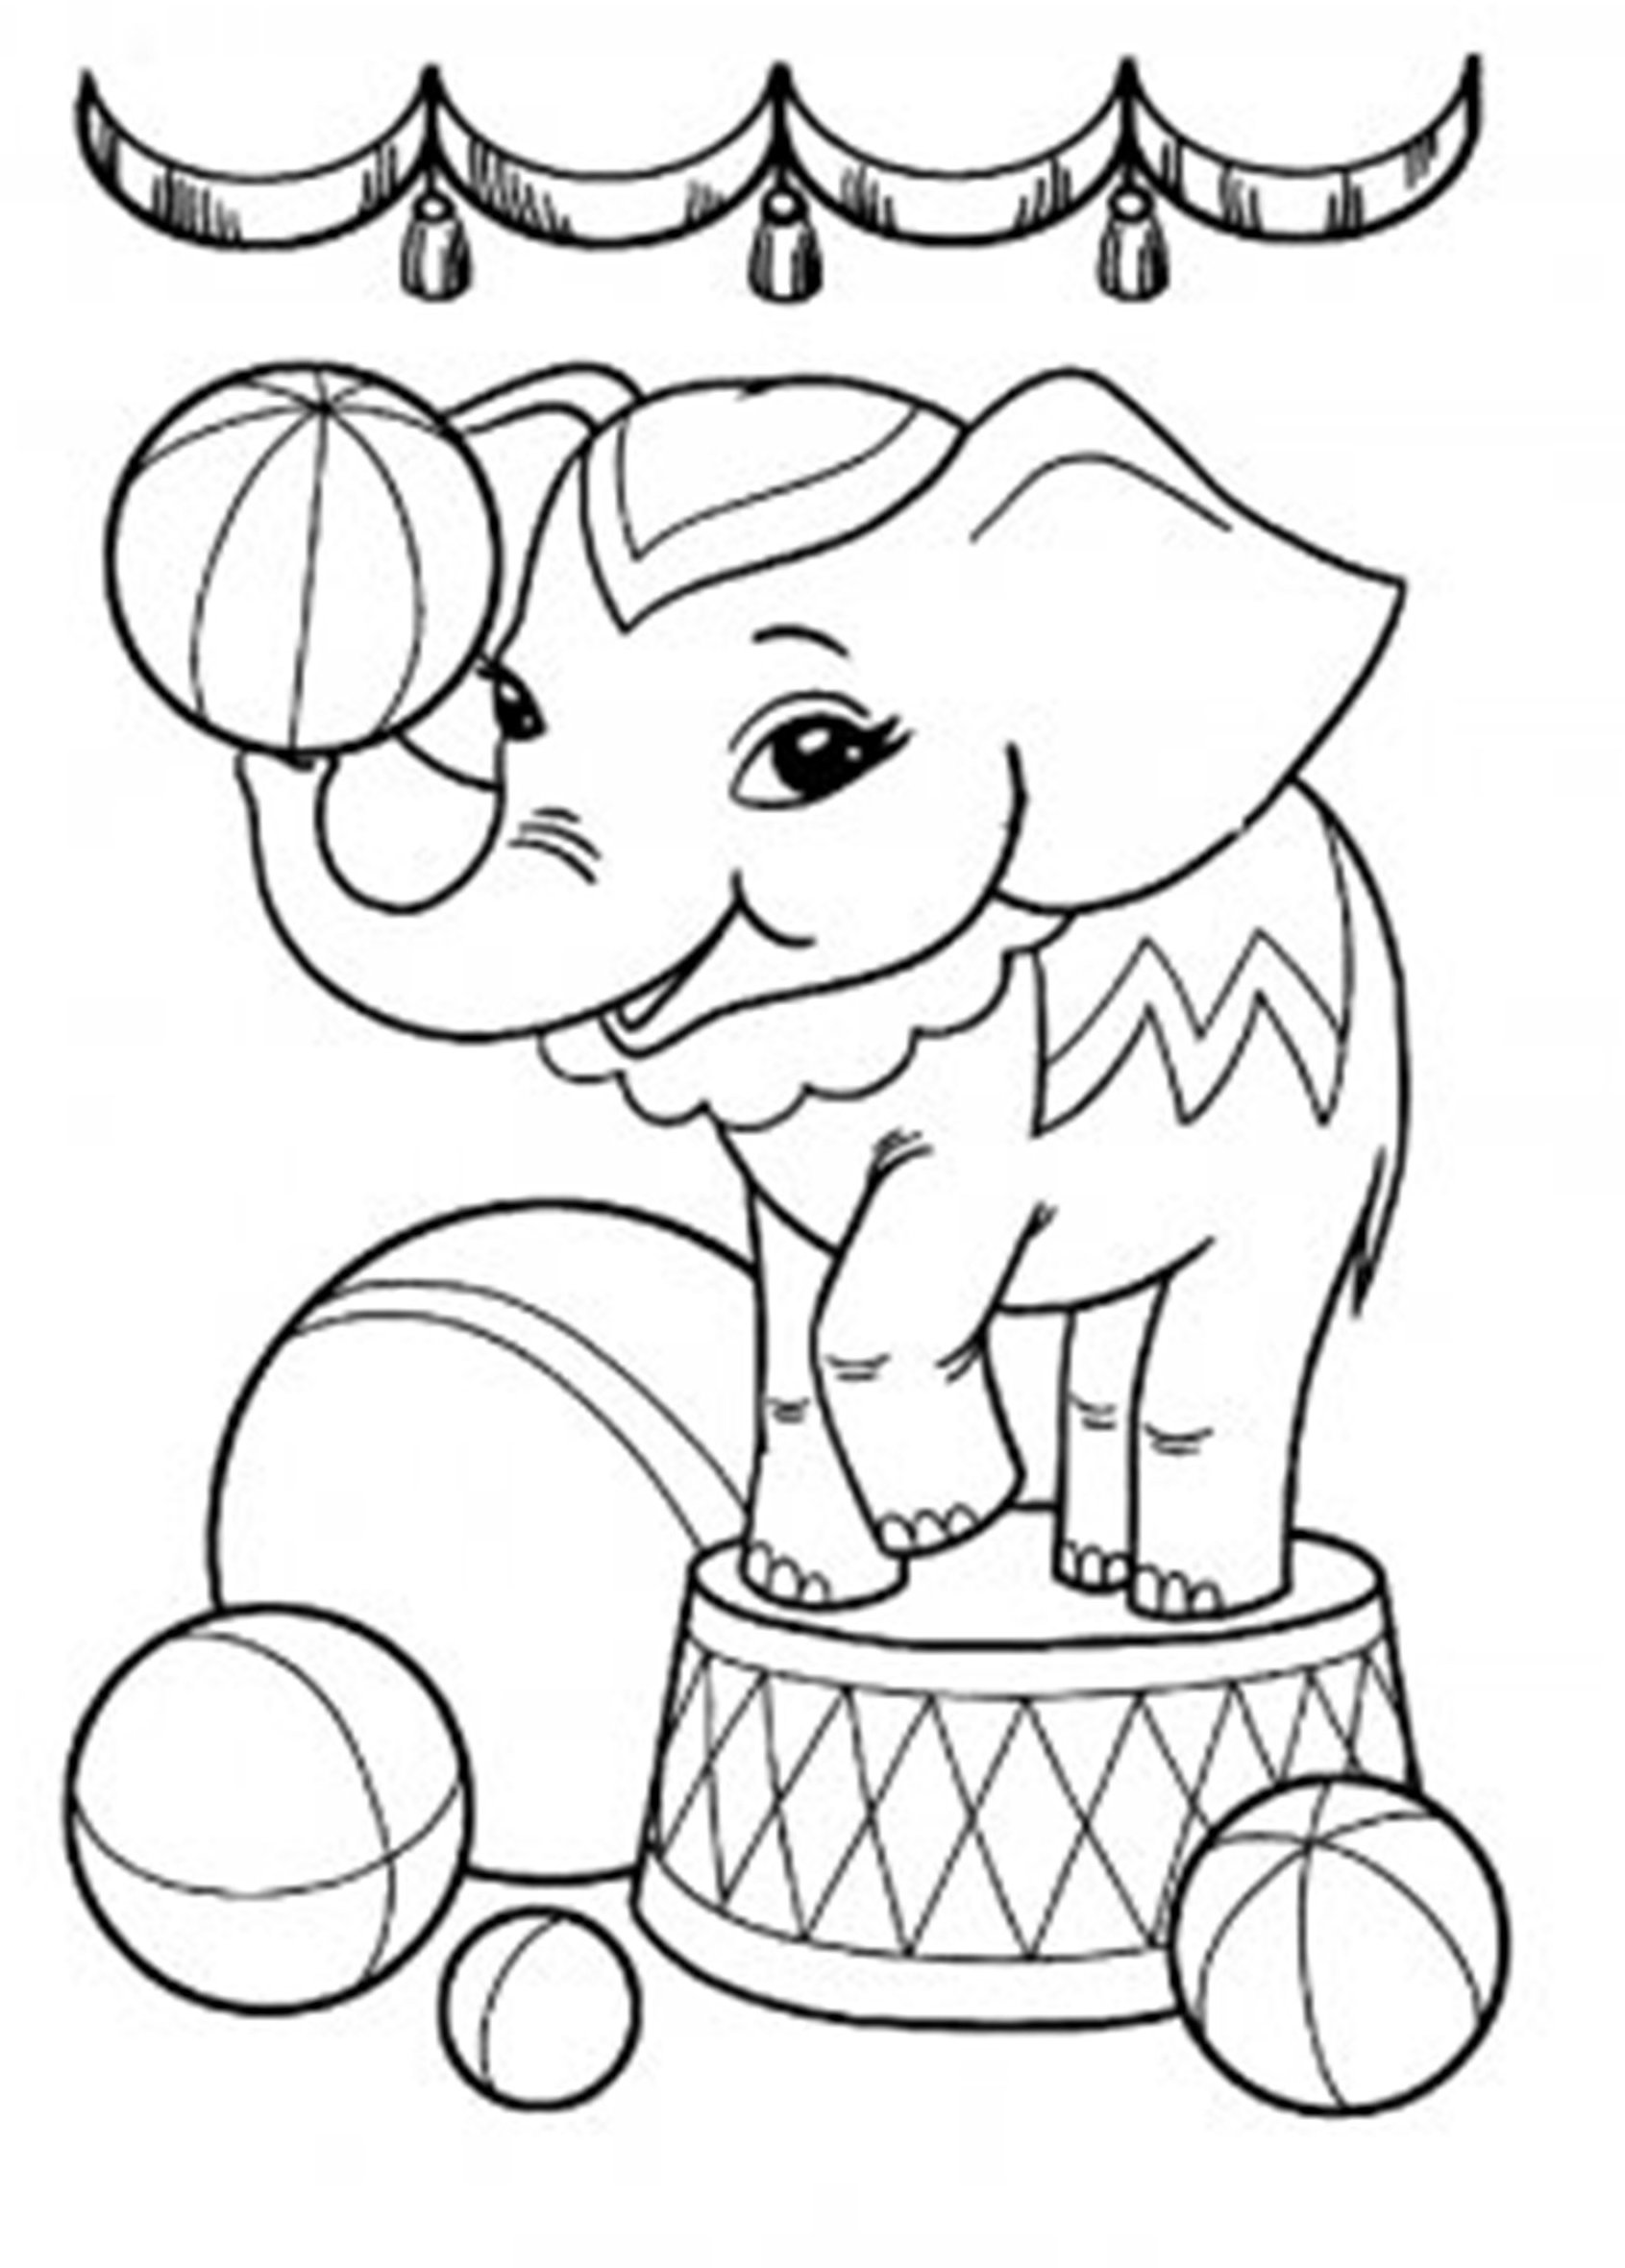 coloring printouts for kids free printable tangled coloring pages for kids cool2bkids kids printouts for coloring